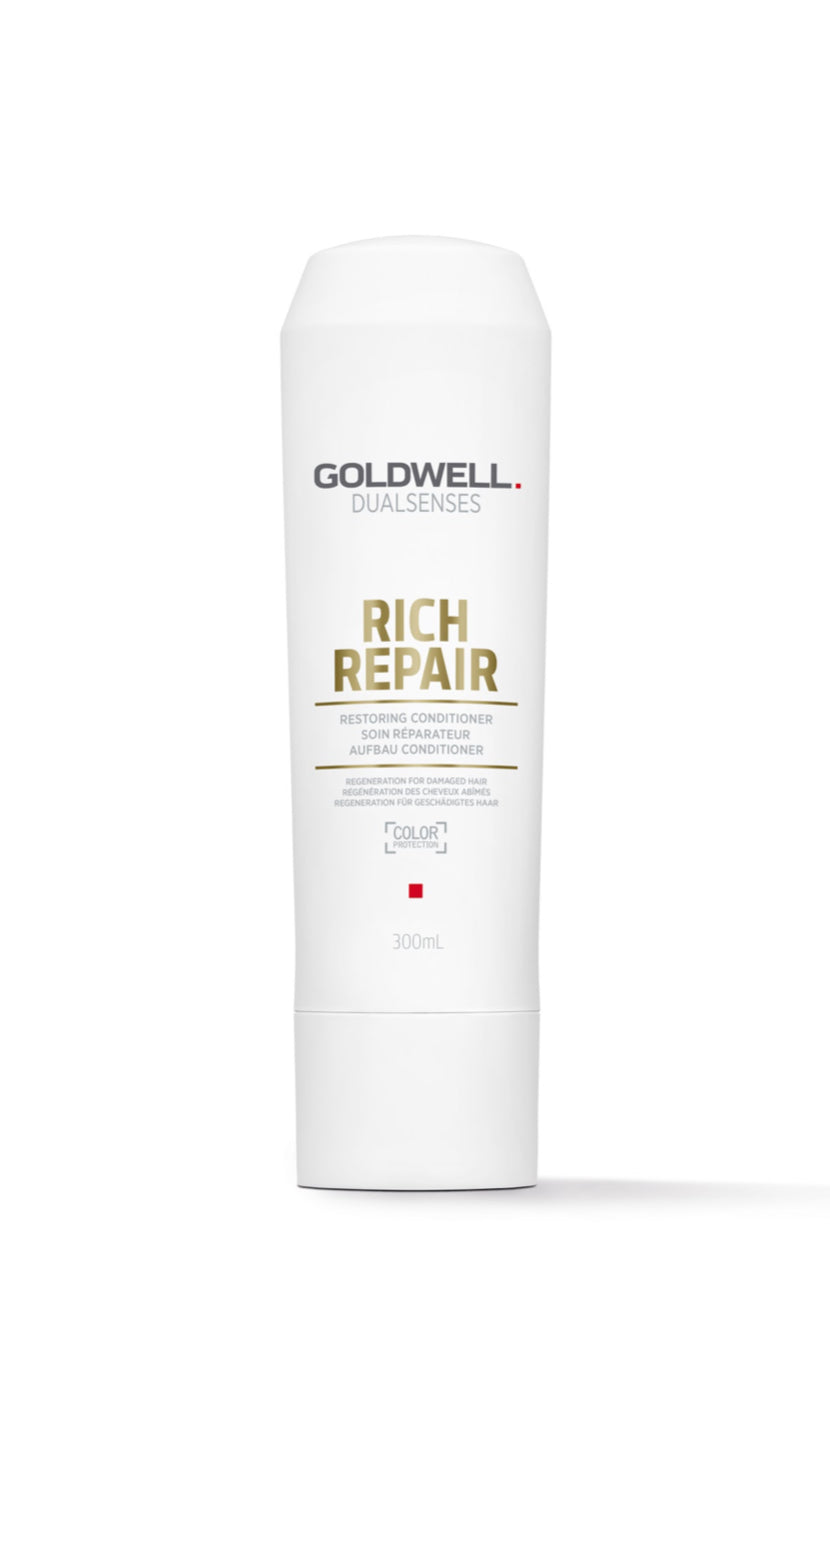 Dualsenses Rich Repair Restoring Conditioner. (300ml)